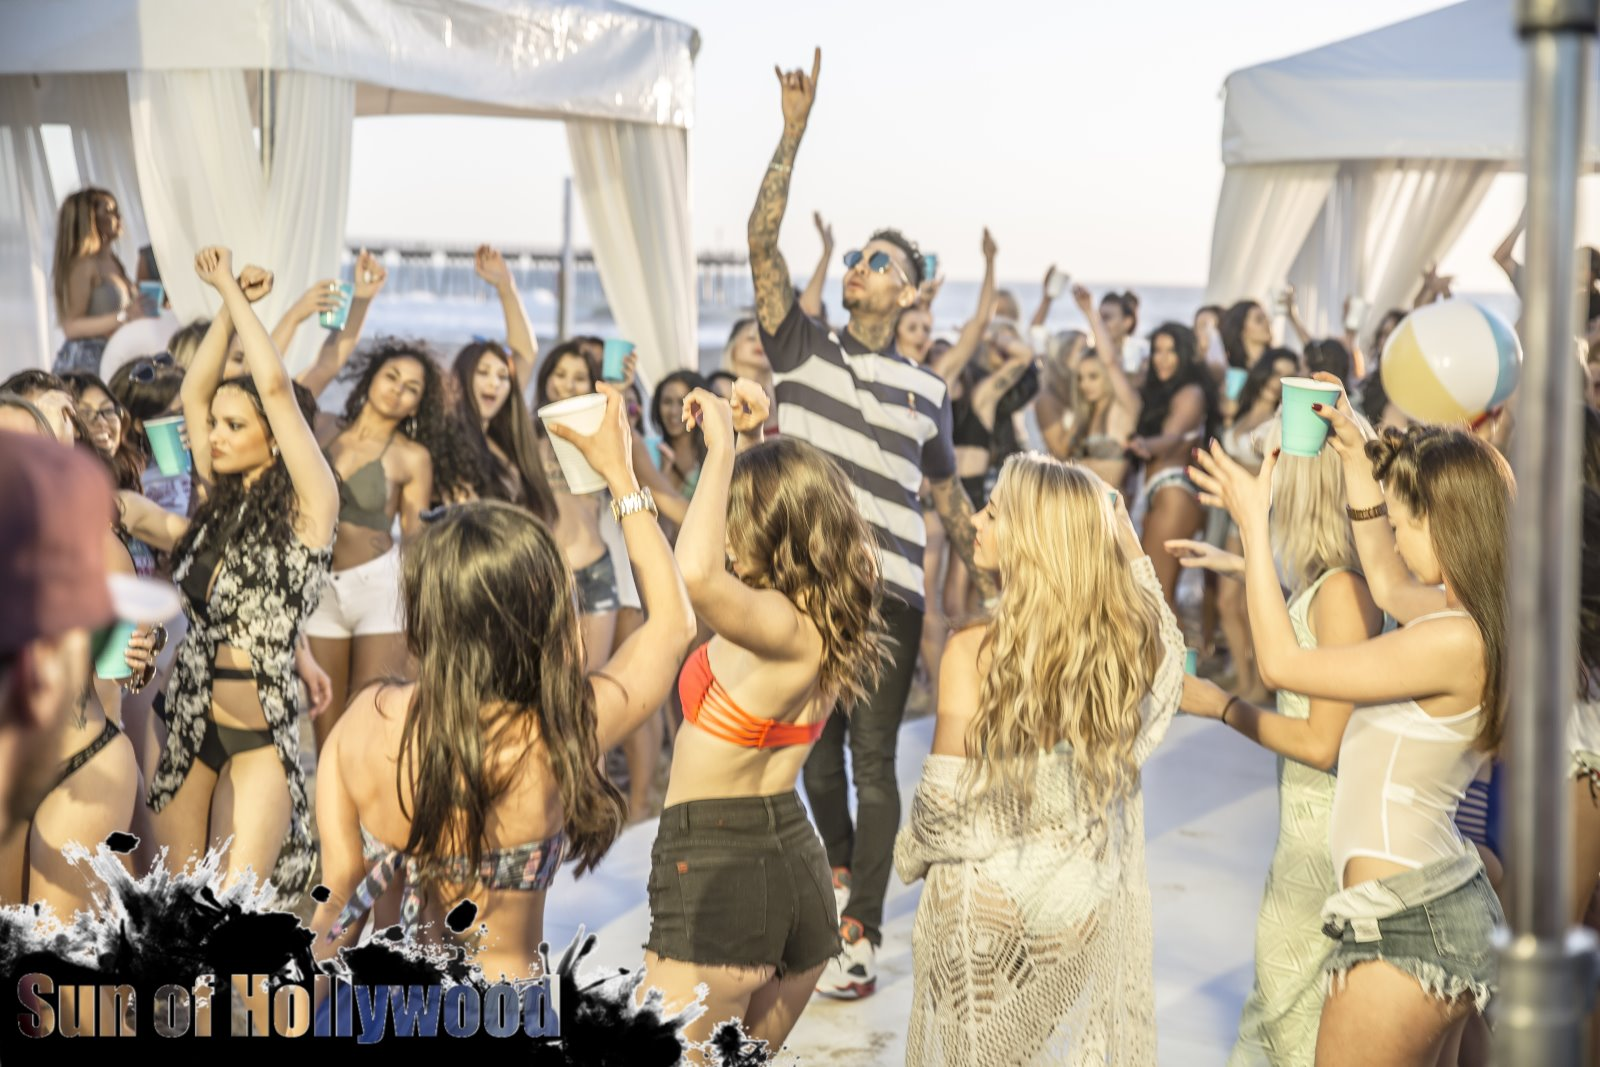 Chris Brown, Benny Benassi and Riveting Entertainment Give U A Taste Of Paradise